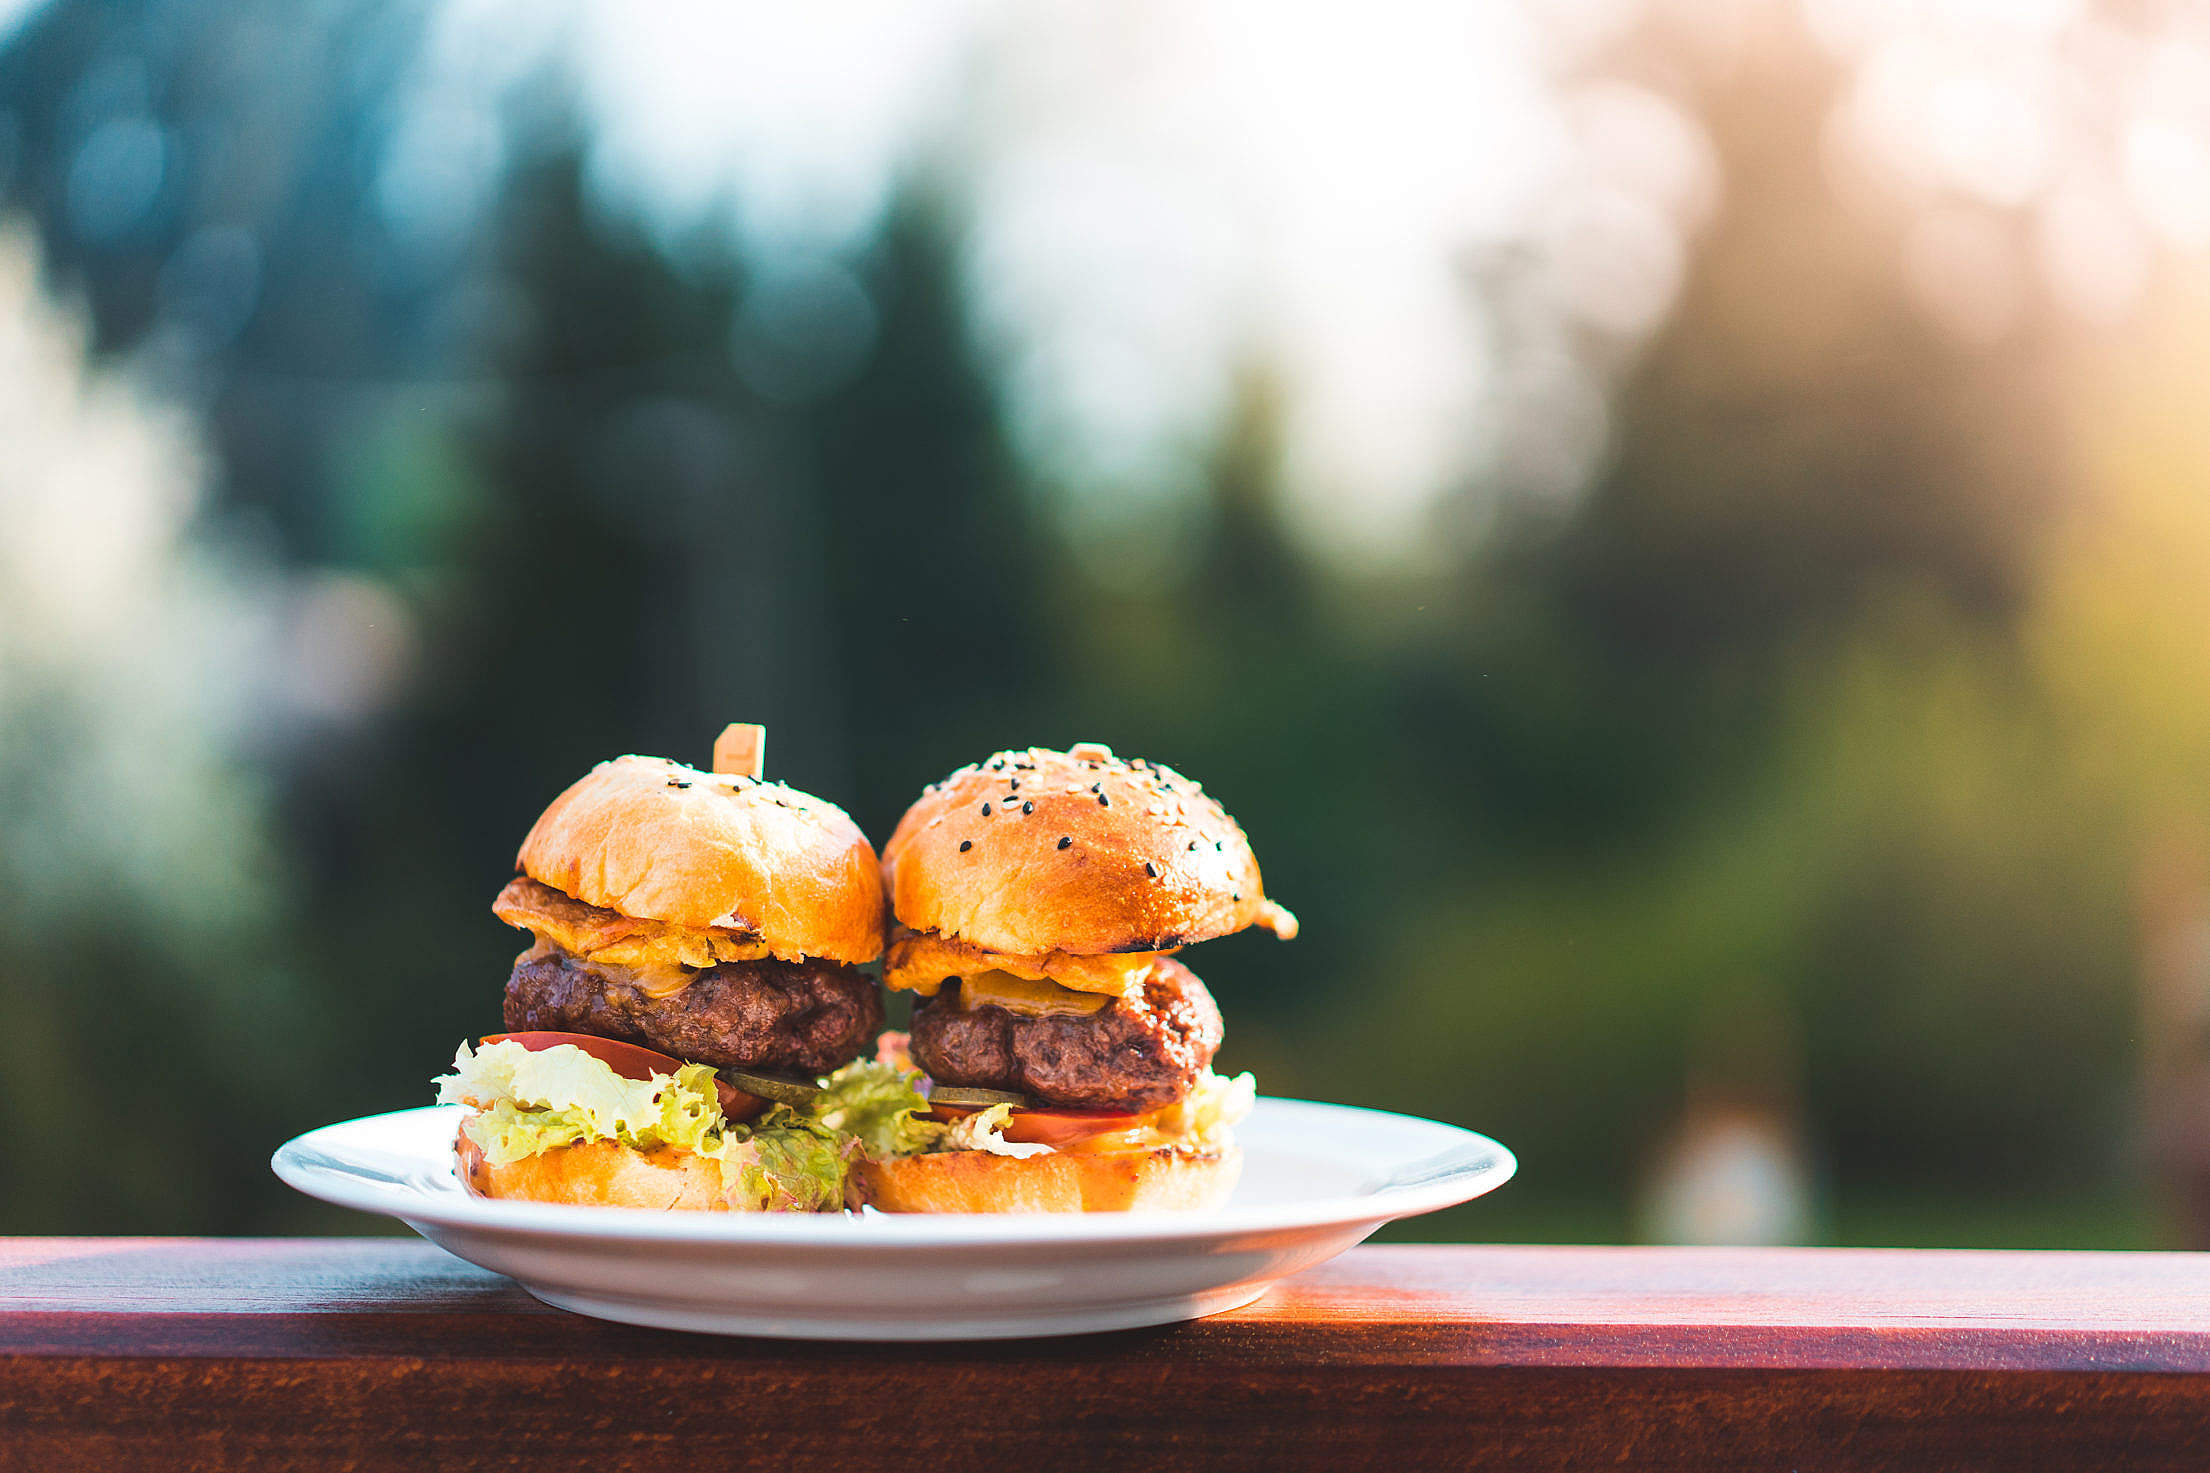 Two Mini Hamburgers Free Stock Photo